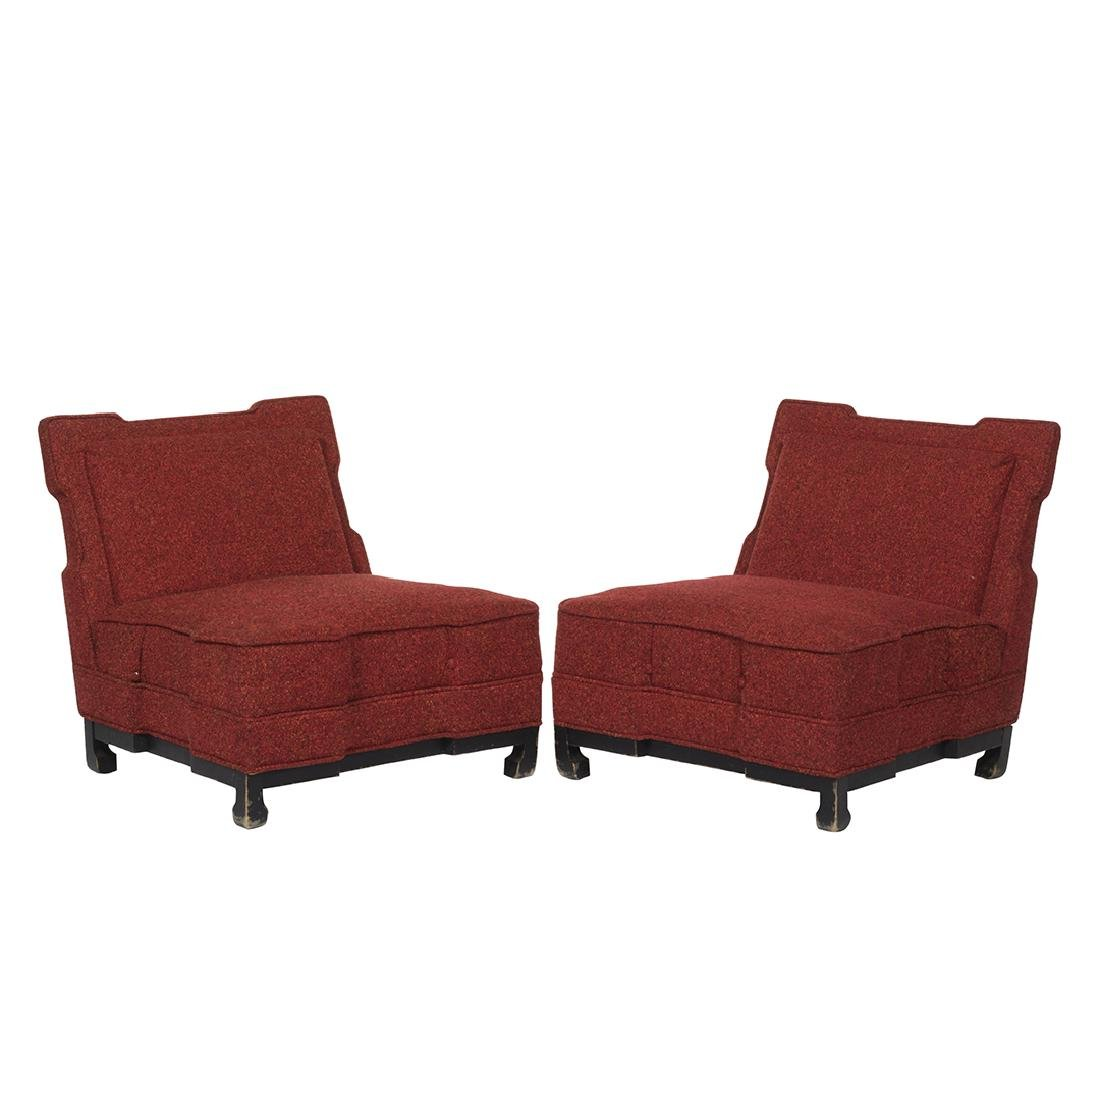 James Mont Style Club Chairs